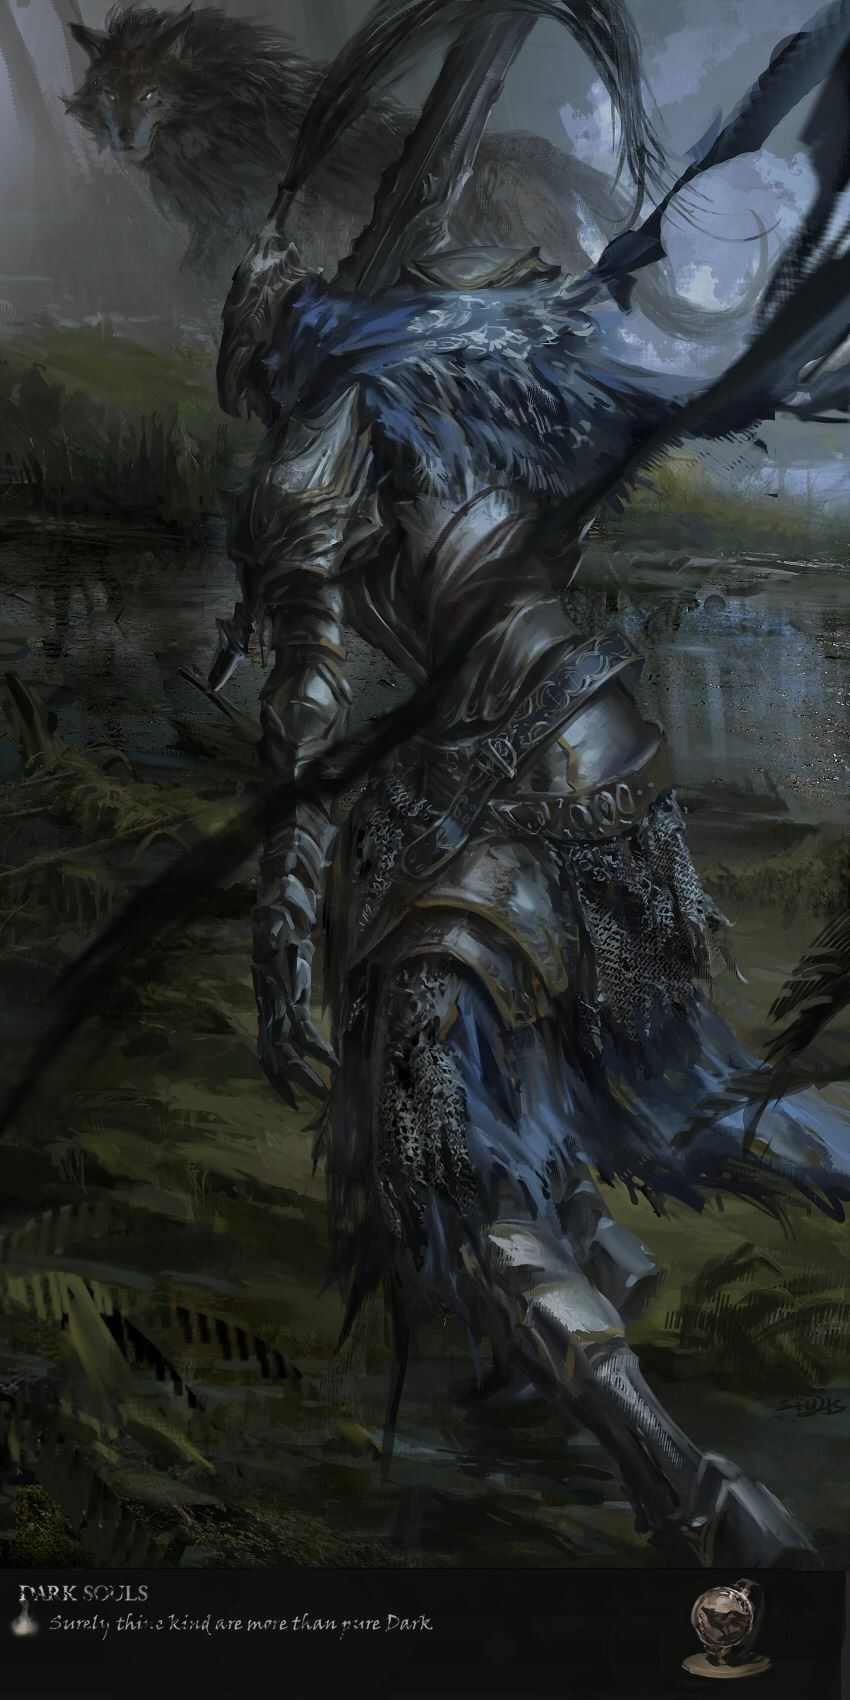 Pin By Will Stegall On Dark Souls Bloodborne Mostly Dark Souls